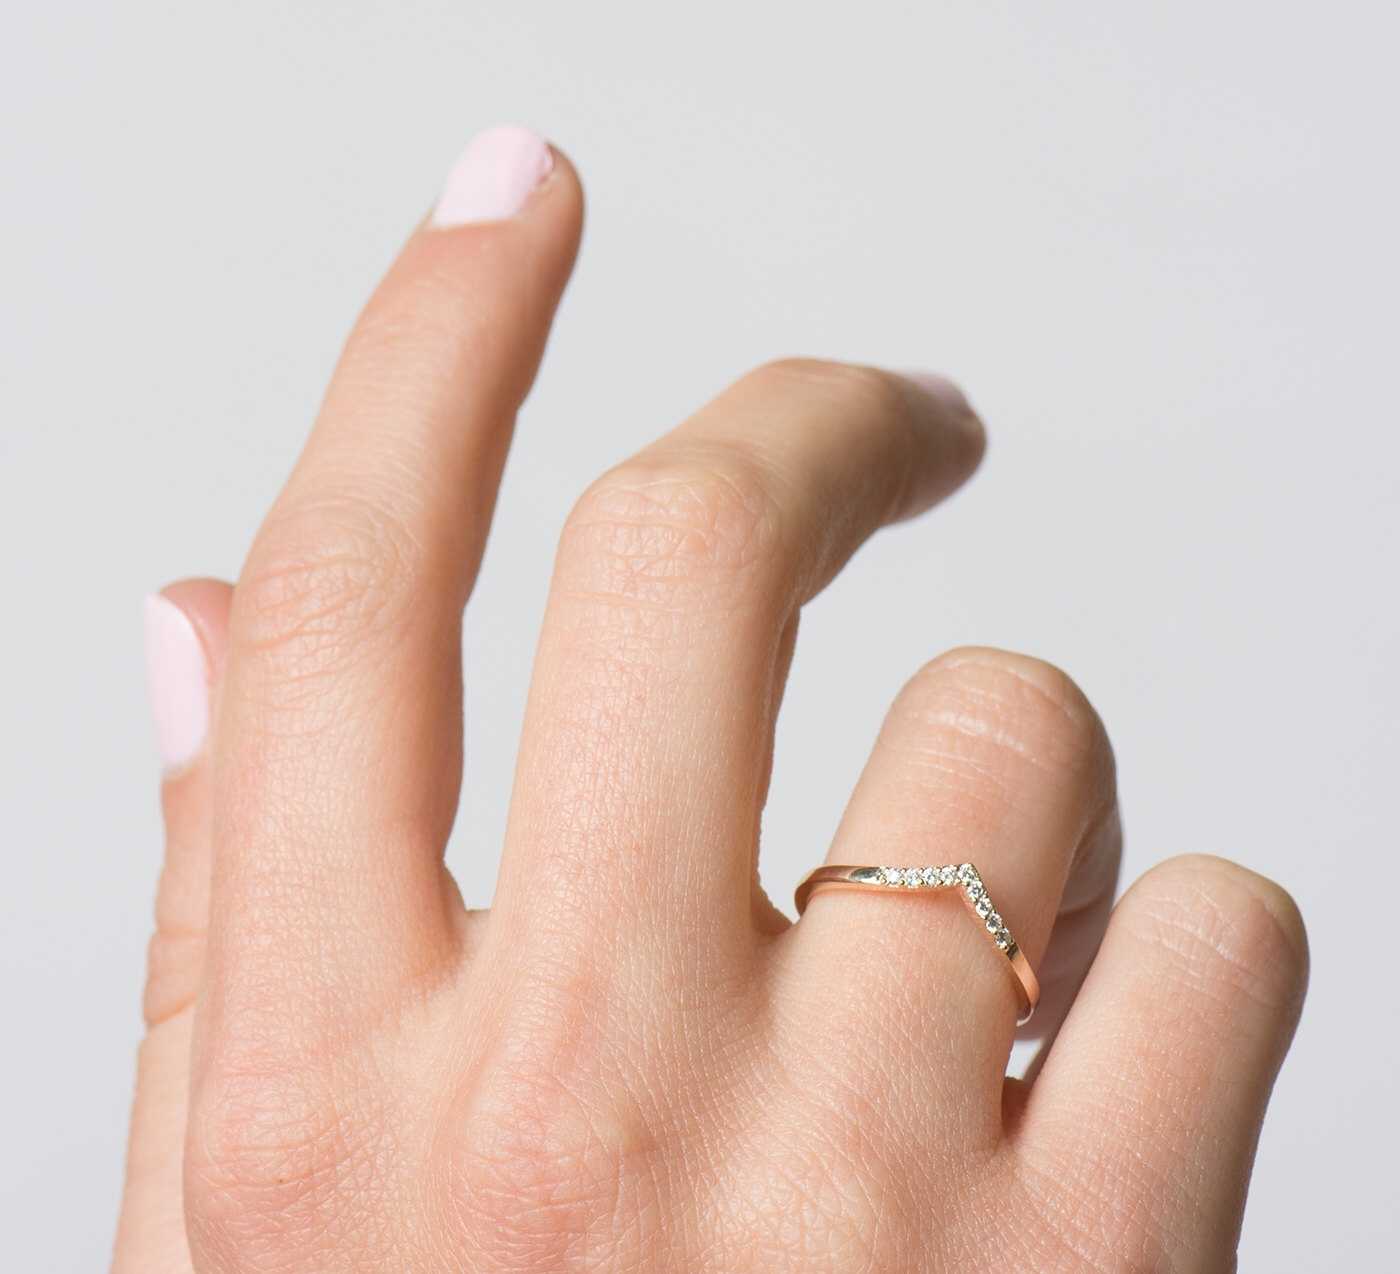 Alianças De Casamento De Ouro | Rose Gold Diamond Ring, Chevron For Best And Newest Chevron Thumb Rings (Gallery 5 of 15)